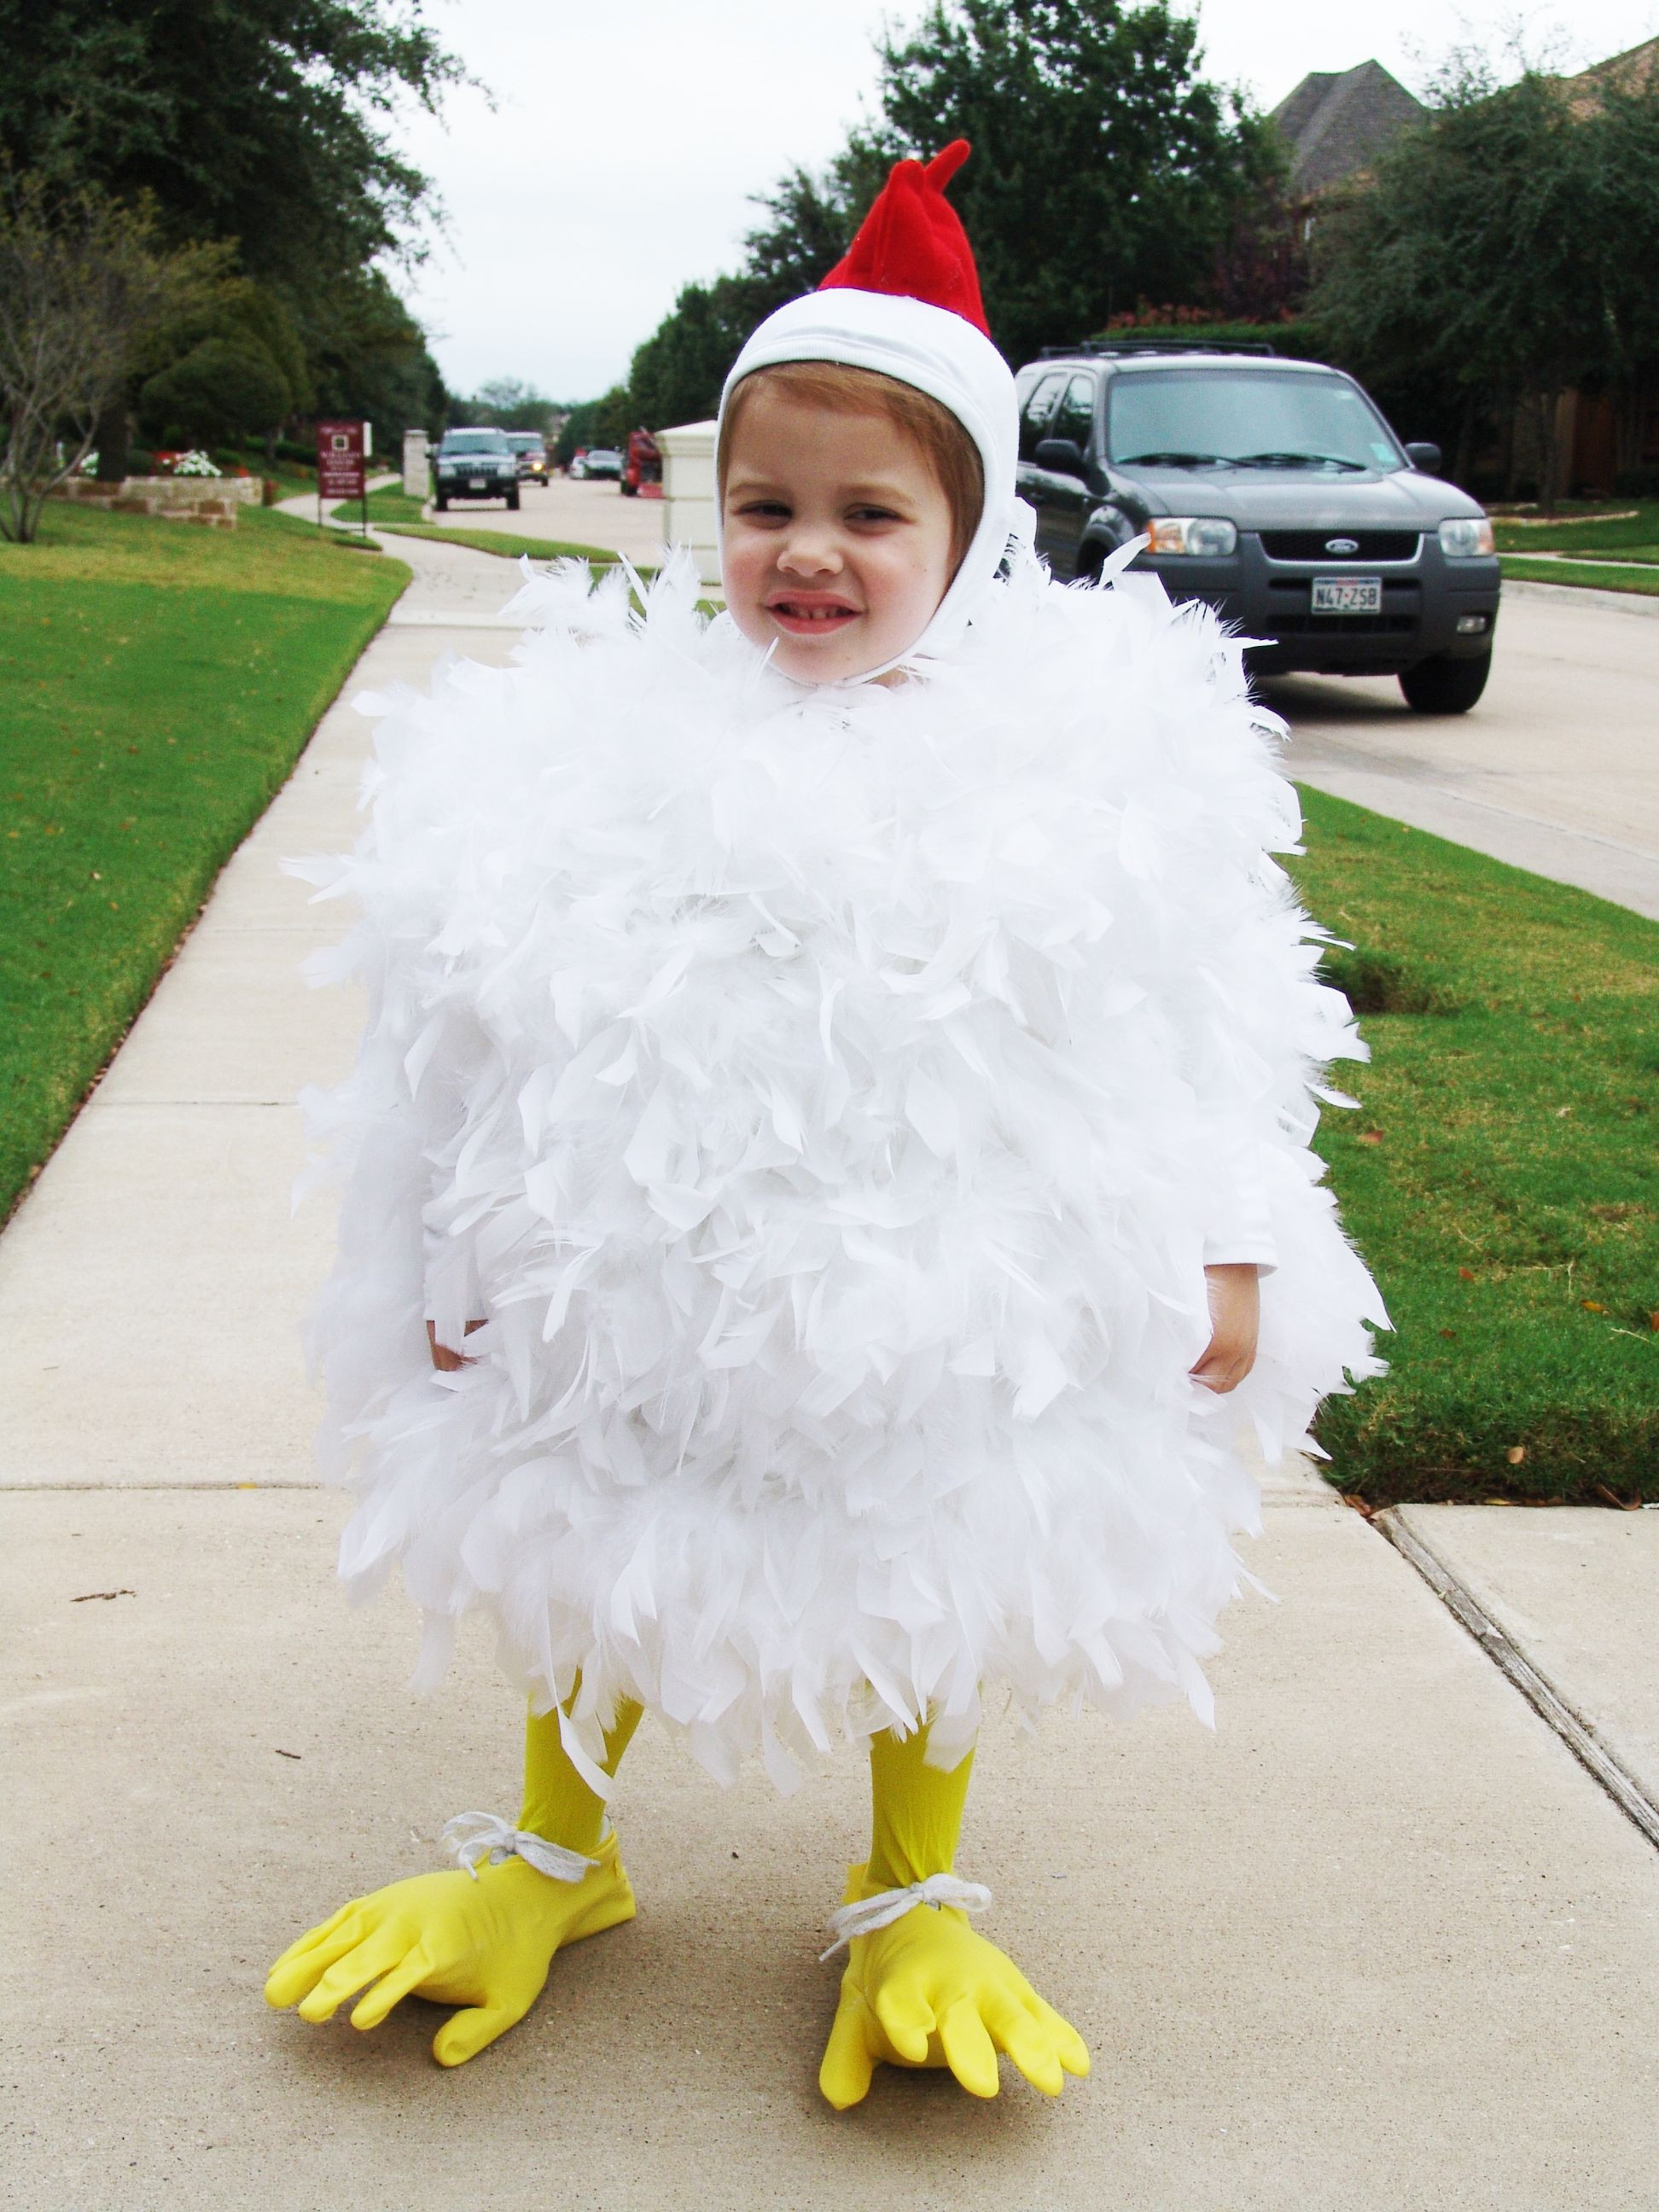 Best ideas about Chicken Costume DIY . Save or Pin 50 DIY Halloween Costumes Now.